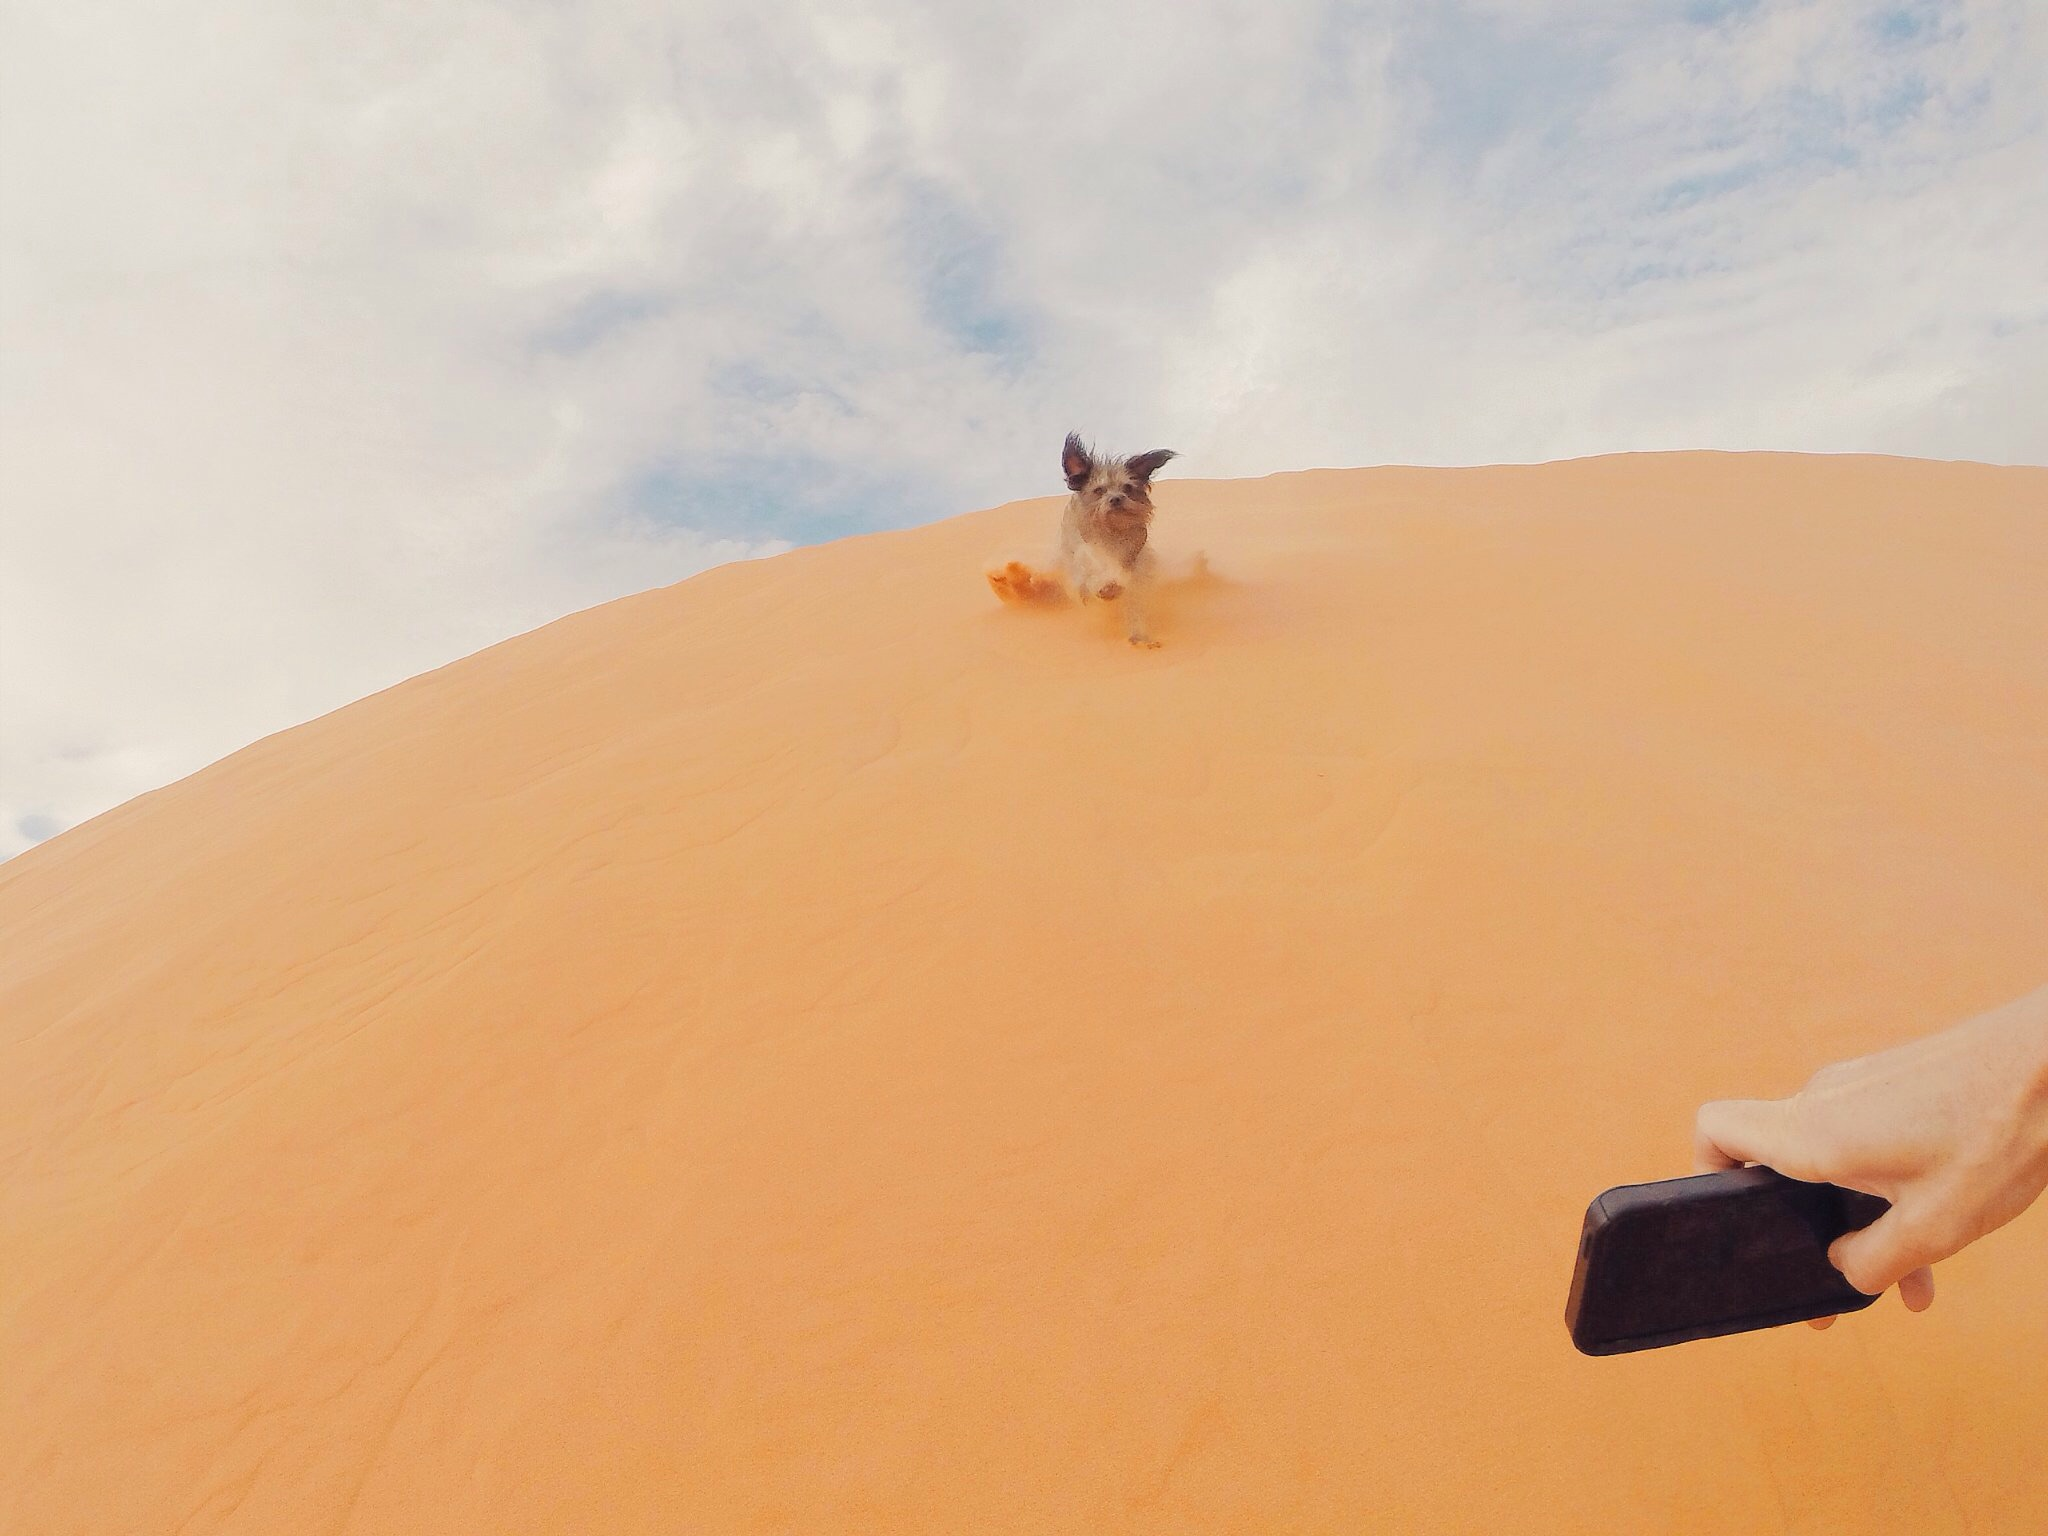 Taking photos of Max with my GoPro and iPhone at the same time in Coral Sands park in Utah